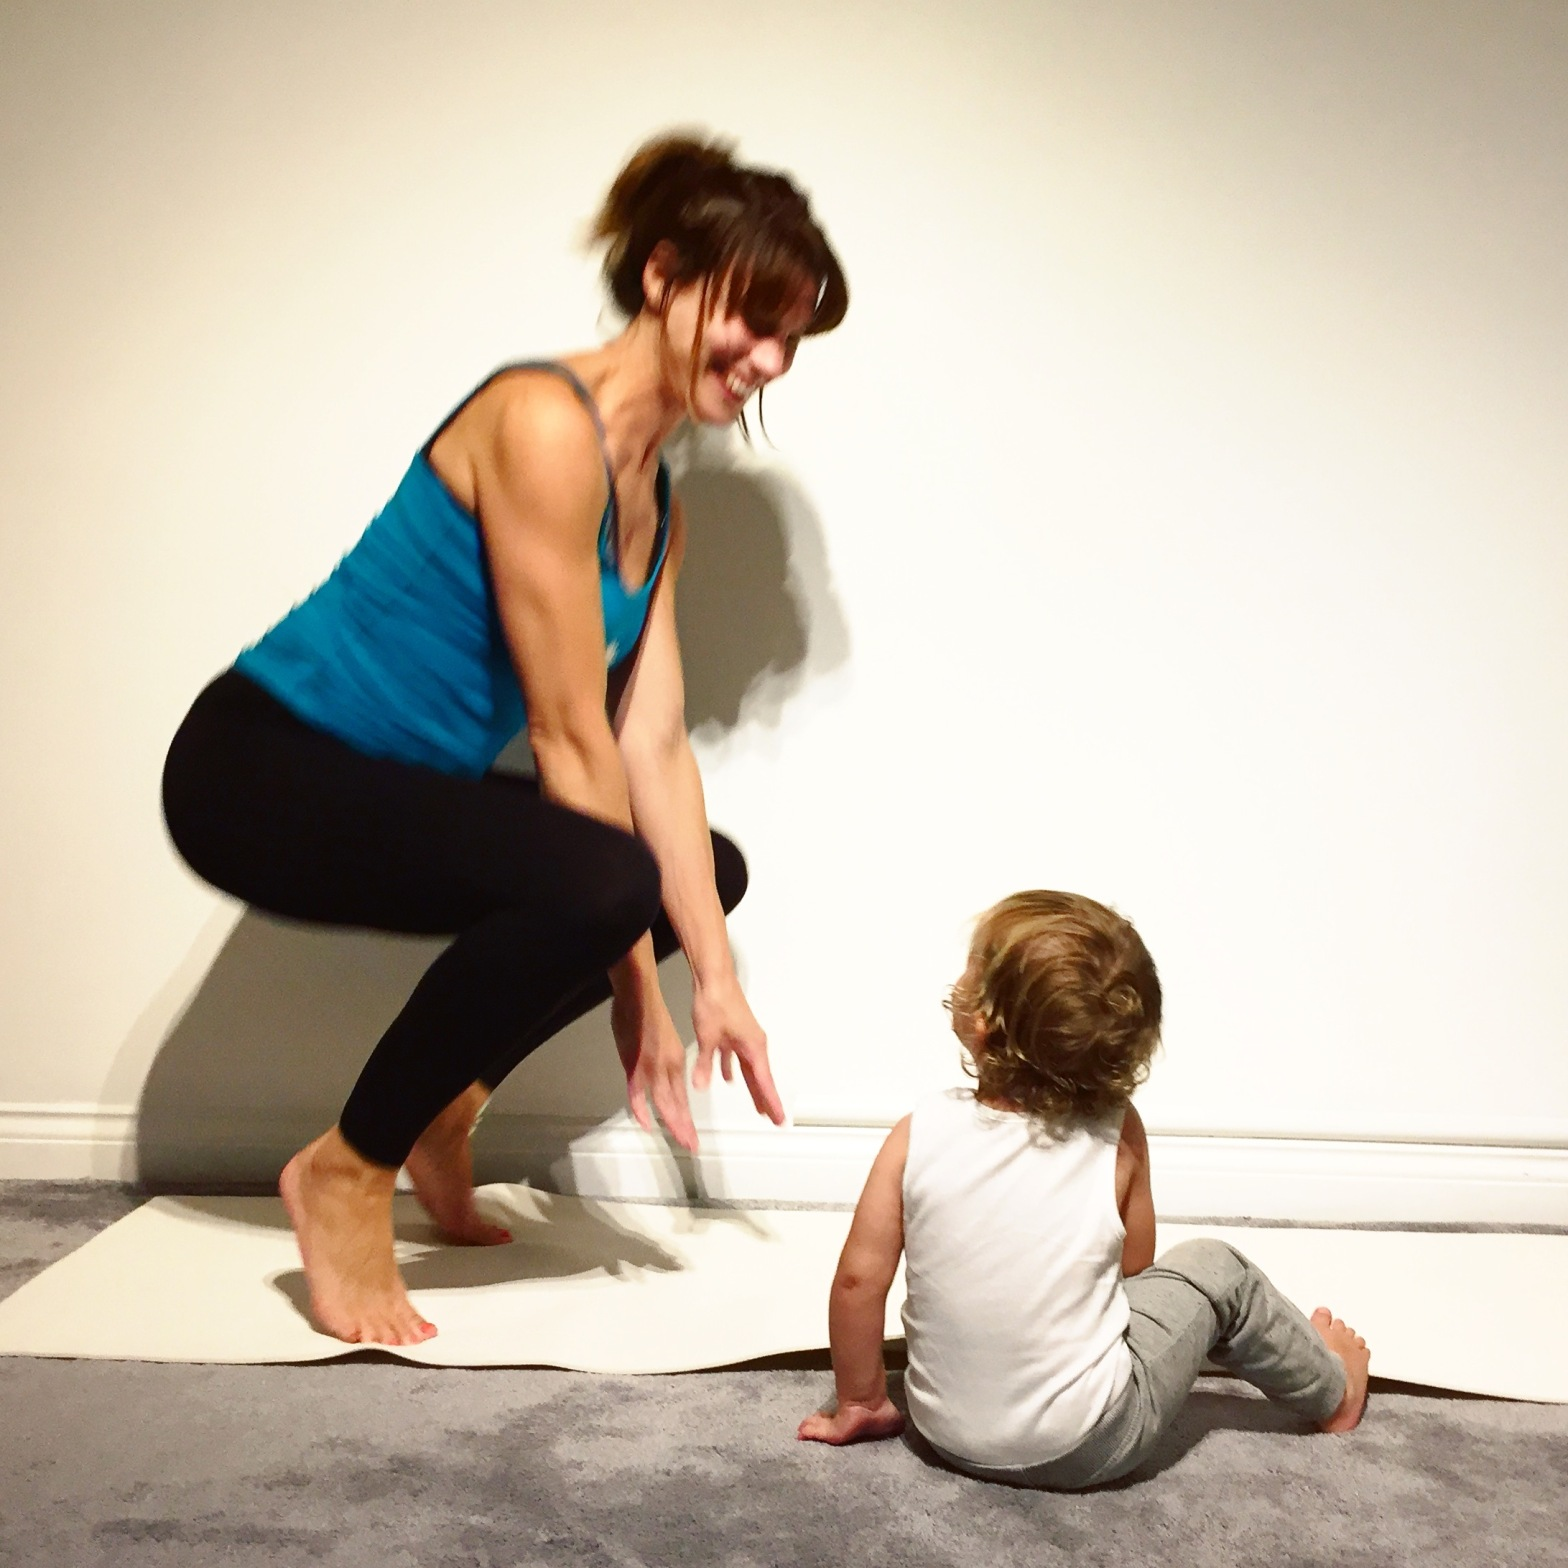 Toddler yoga mum and baby yoga Whiteley locks heath park gate Fareham Southampton Portsmouth kids yoga childrens yoga